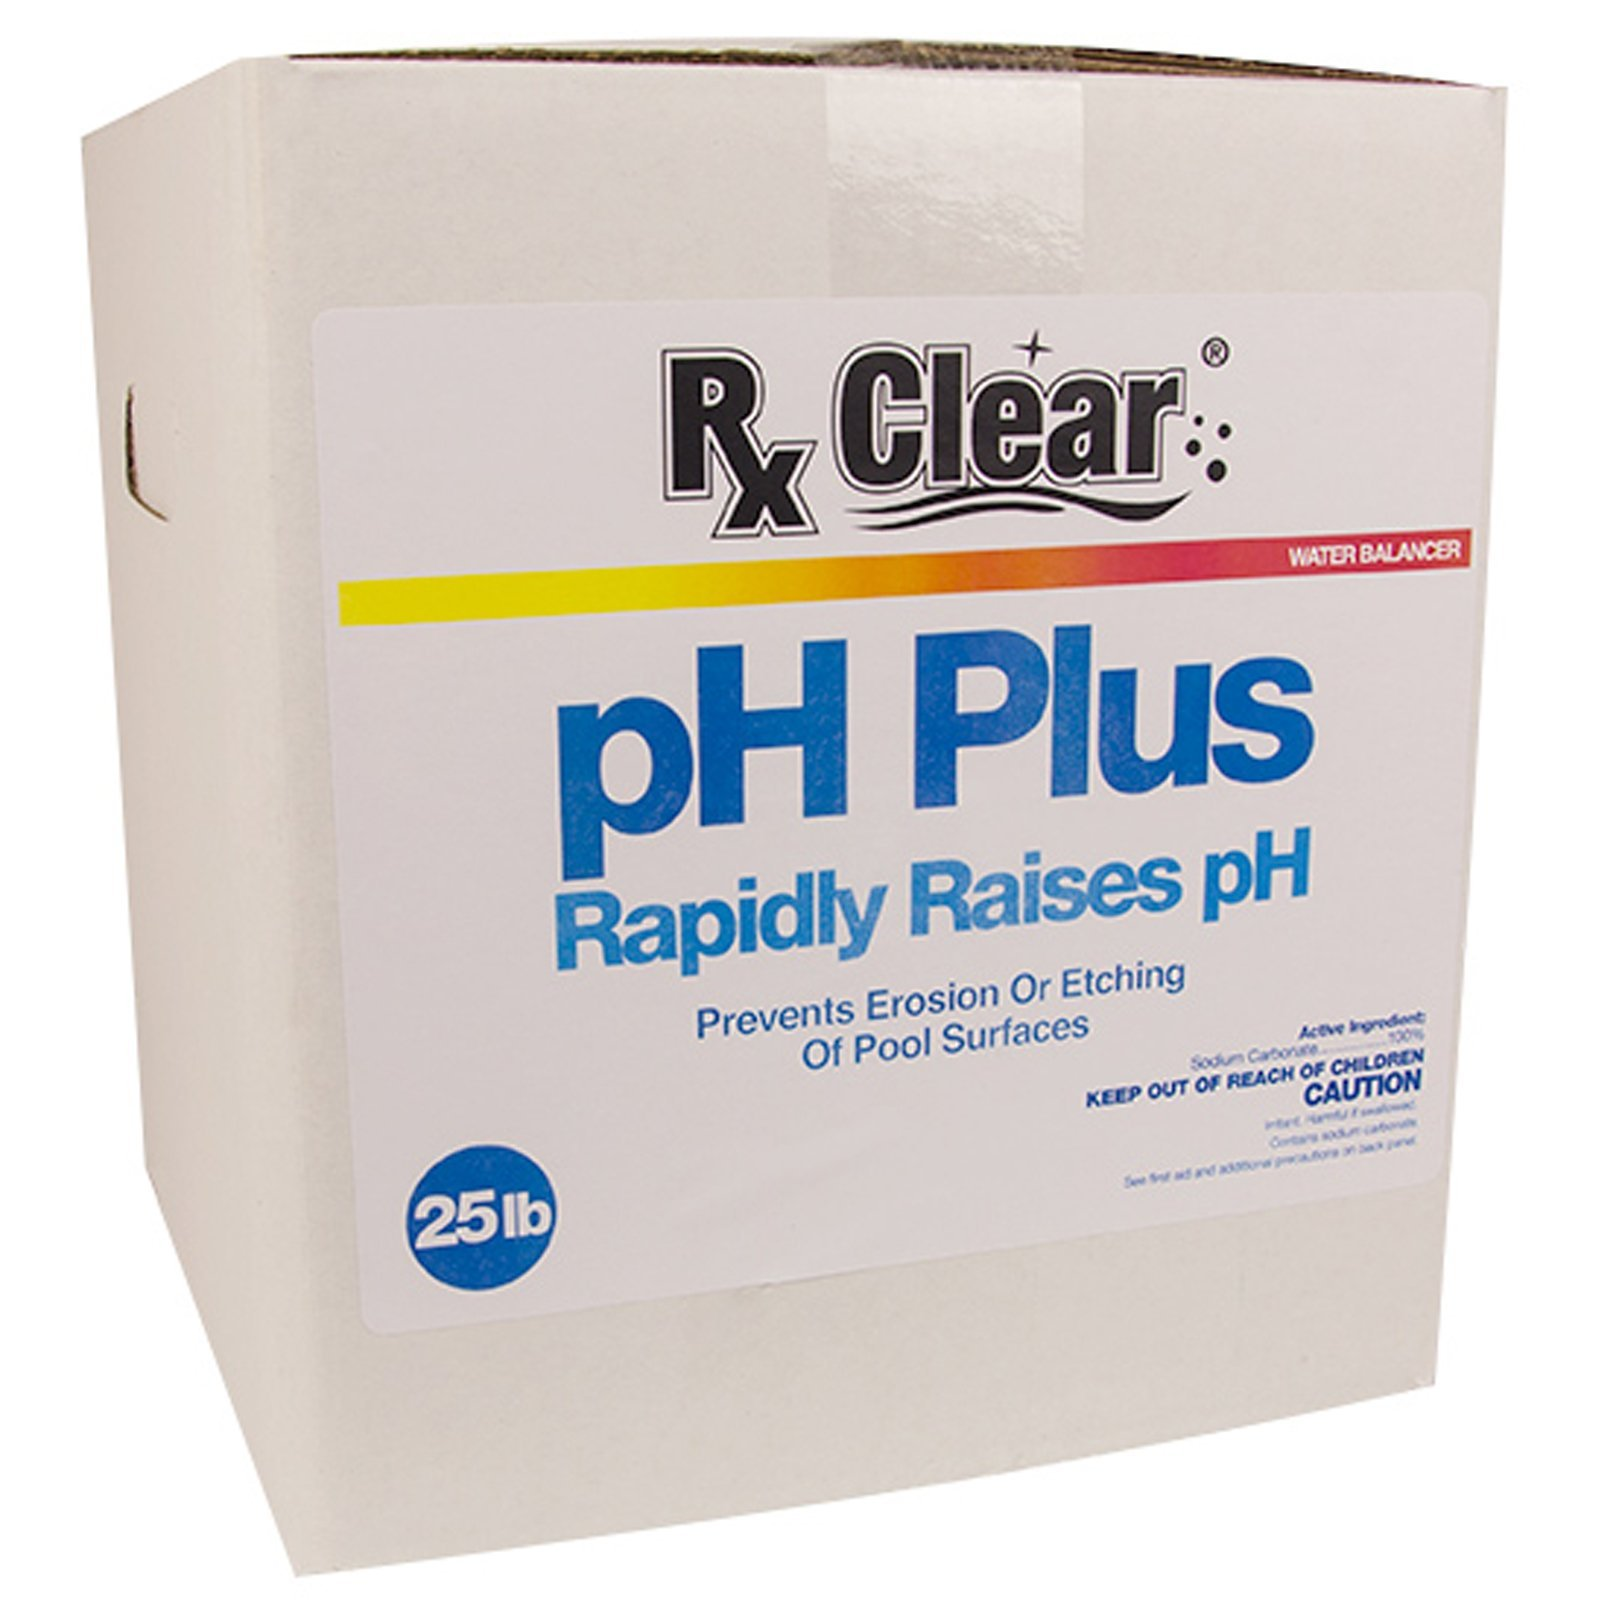 Rx Clear Swimming Pool pH Plus | Rapid Raises pH Levels | Quickly Correct Acidic Water Conditions | Water Balancer | Prevents Erosion Or Etching of Pool Surfaces | 25 Lbs by Rx Clear